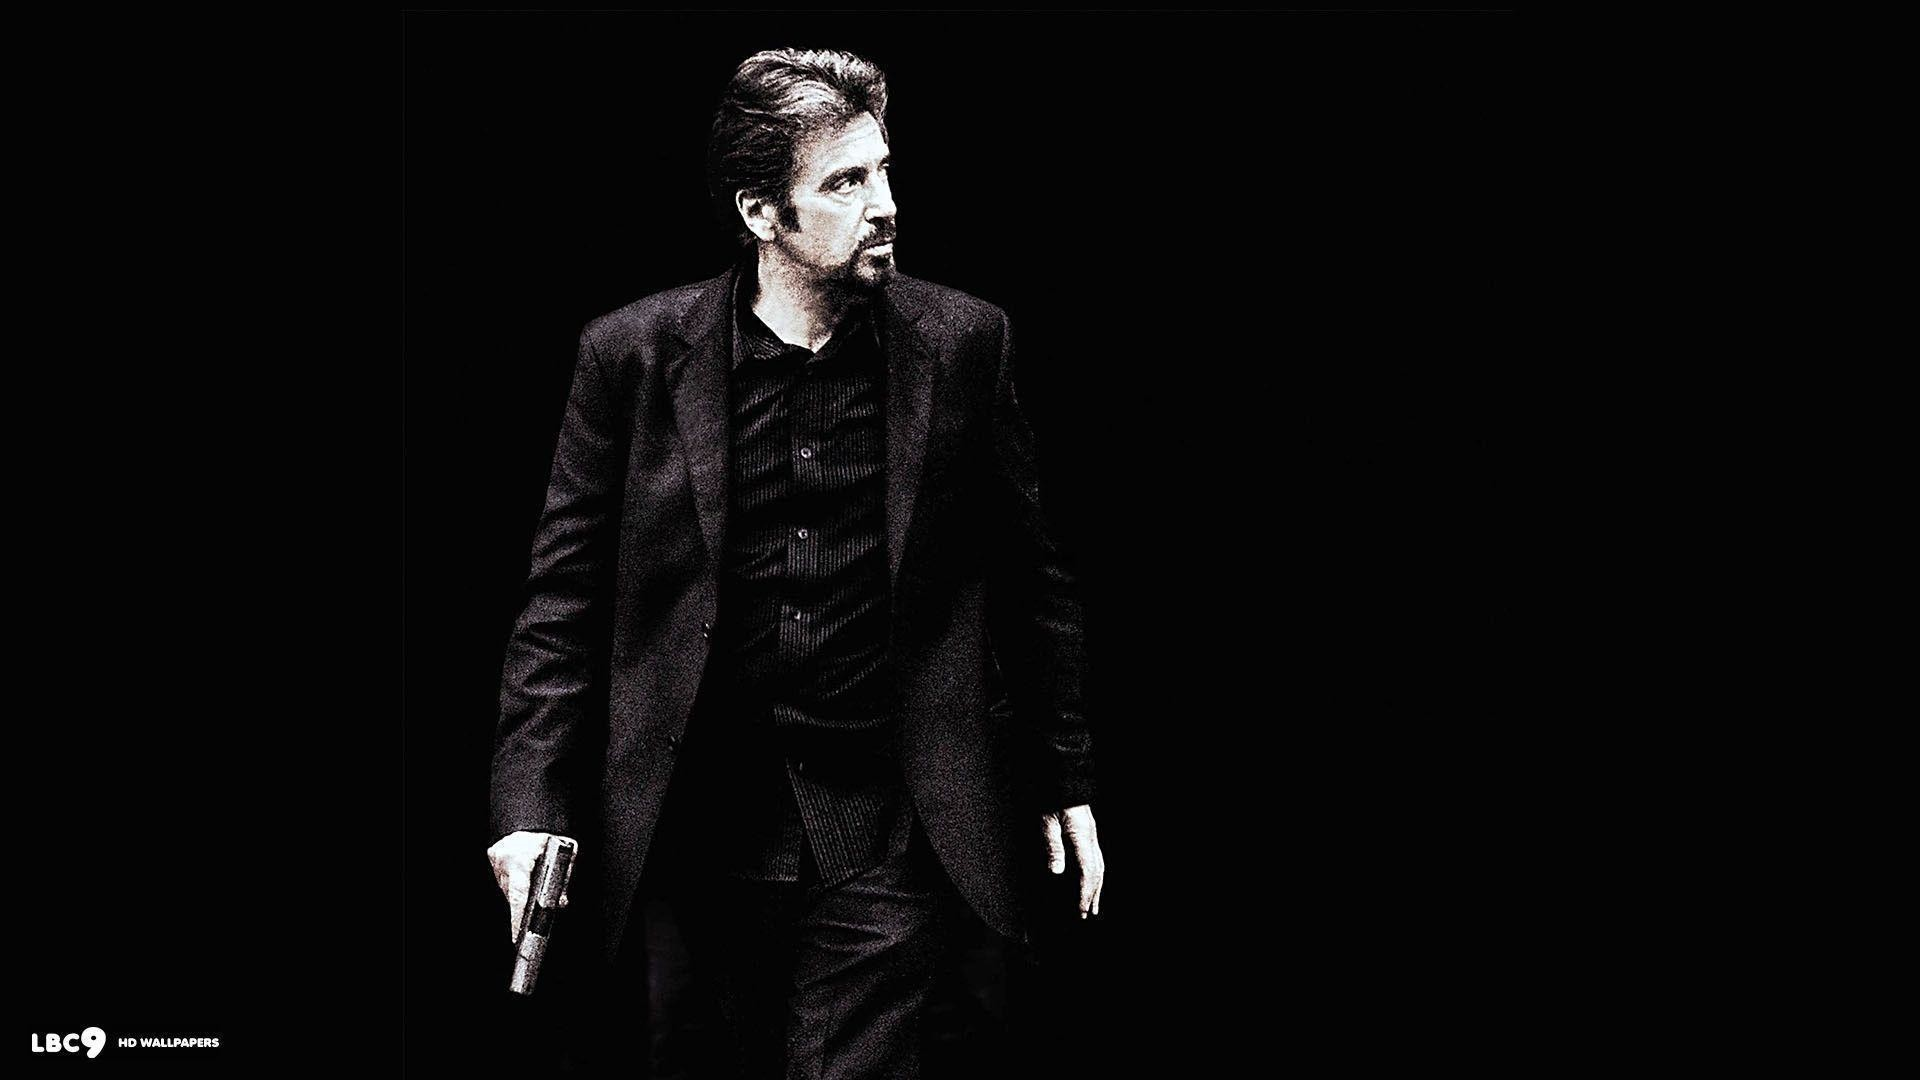 1920x1080 Al Pacino Gangster Wallpaper